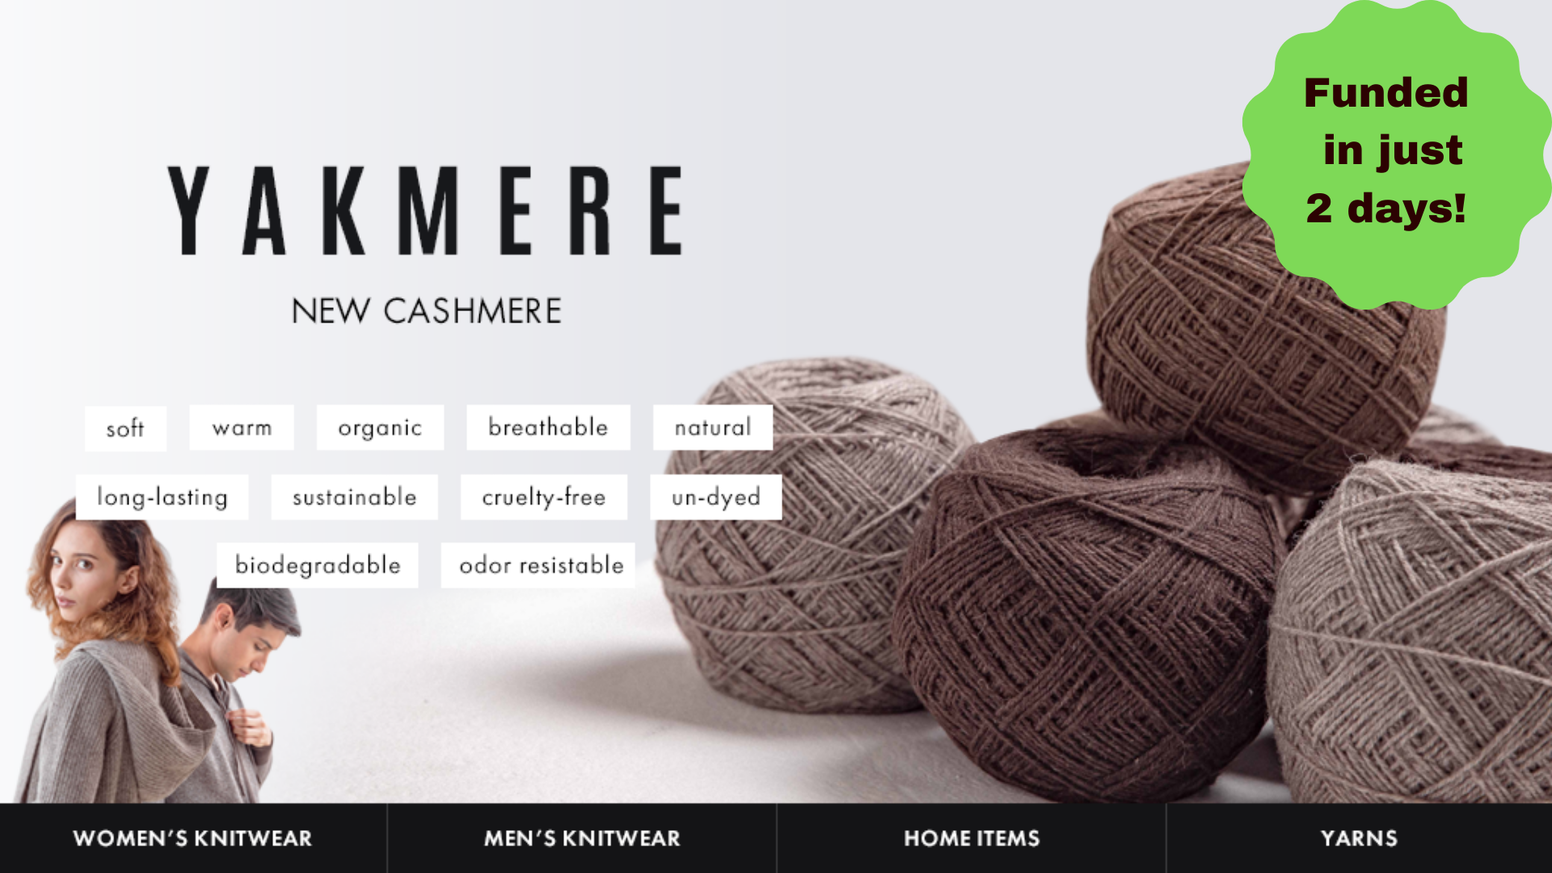 You can knit or wear or decor with Yakmere products.  Yakmere is warmer than merino and longer lasting than cashmere.